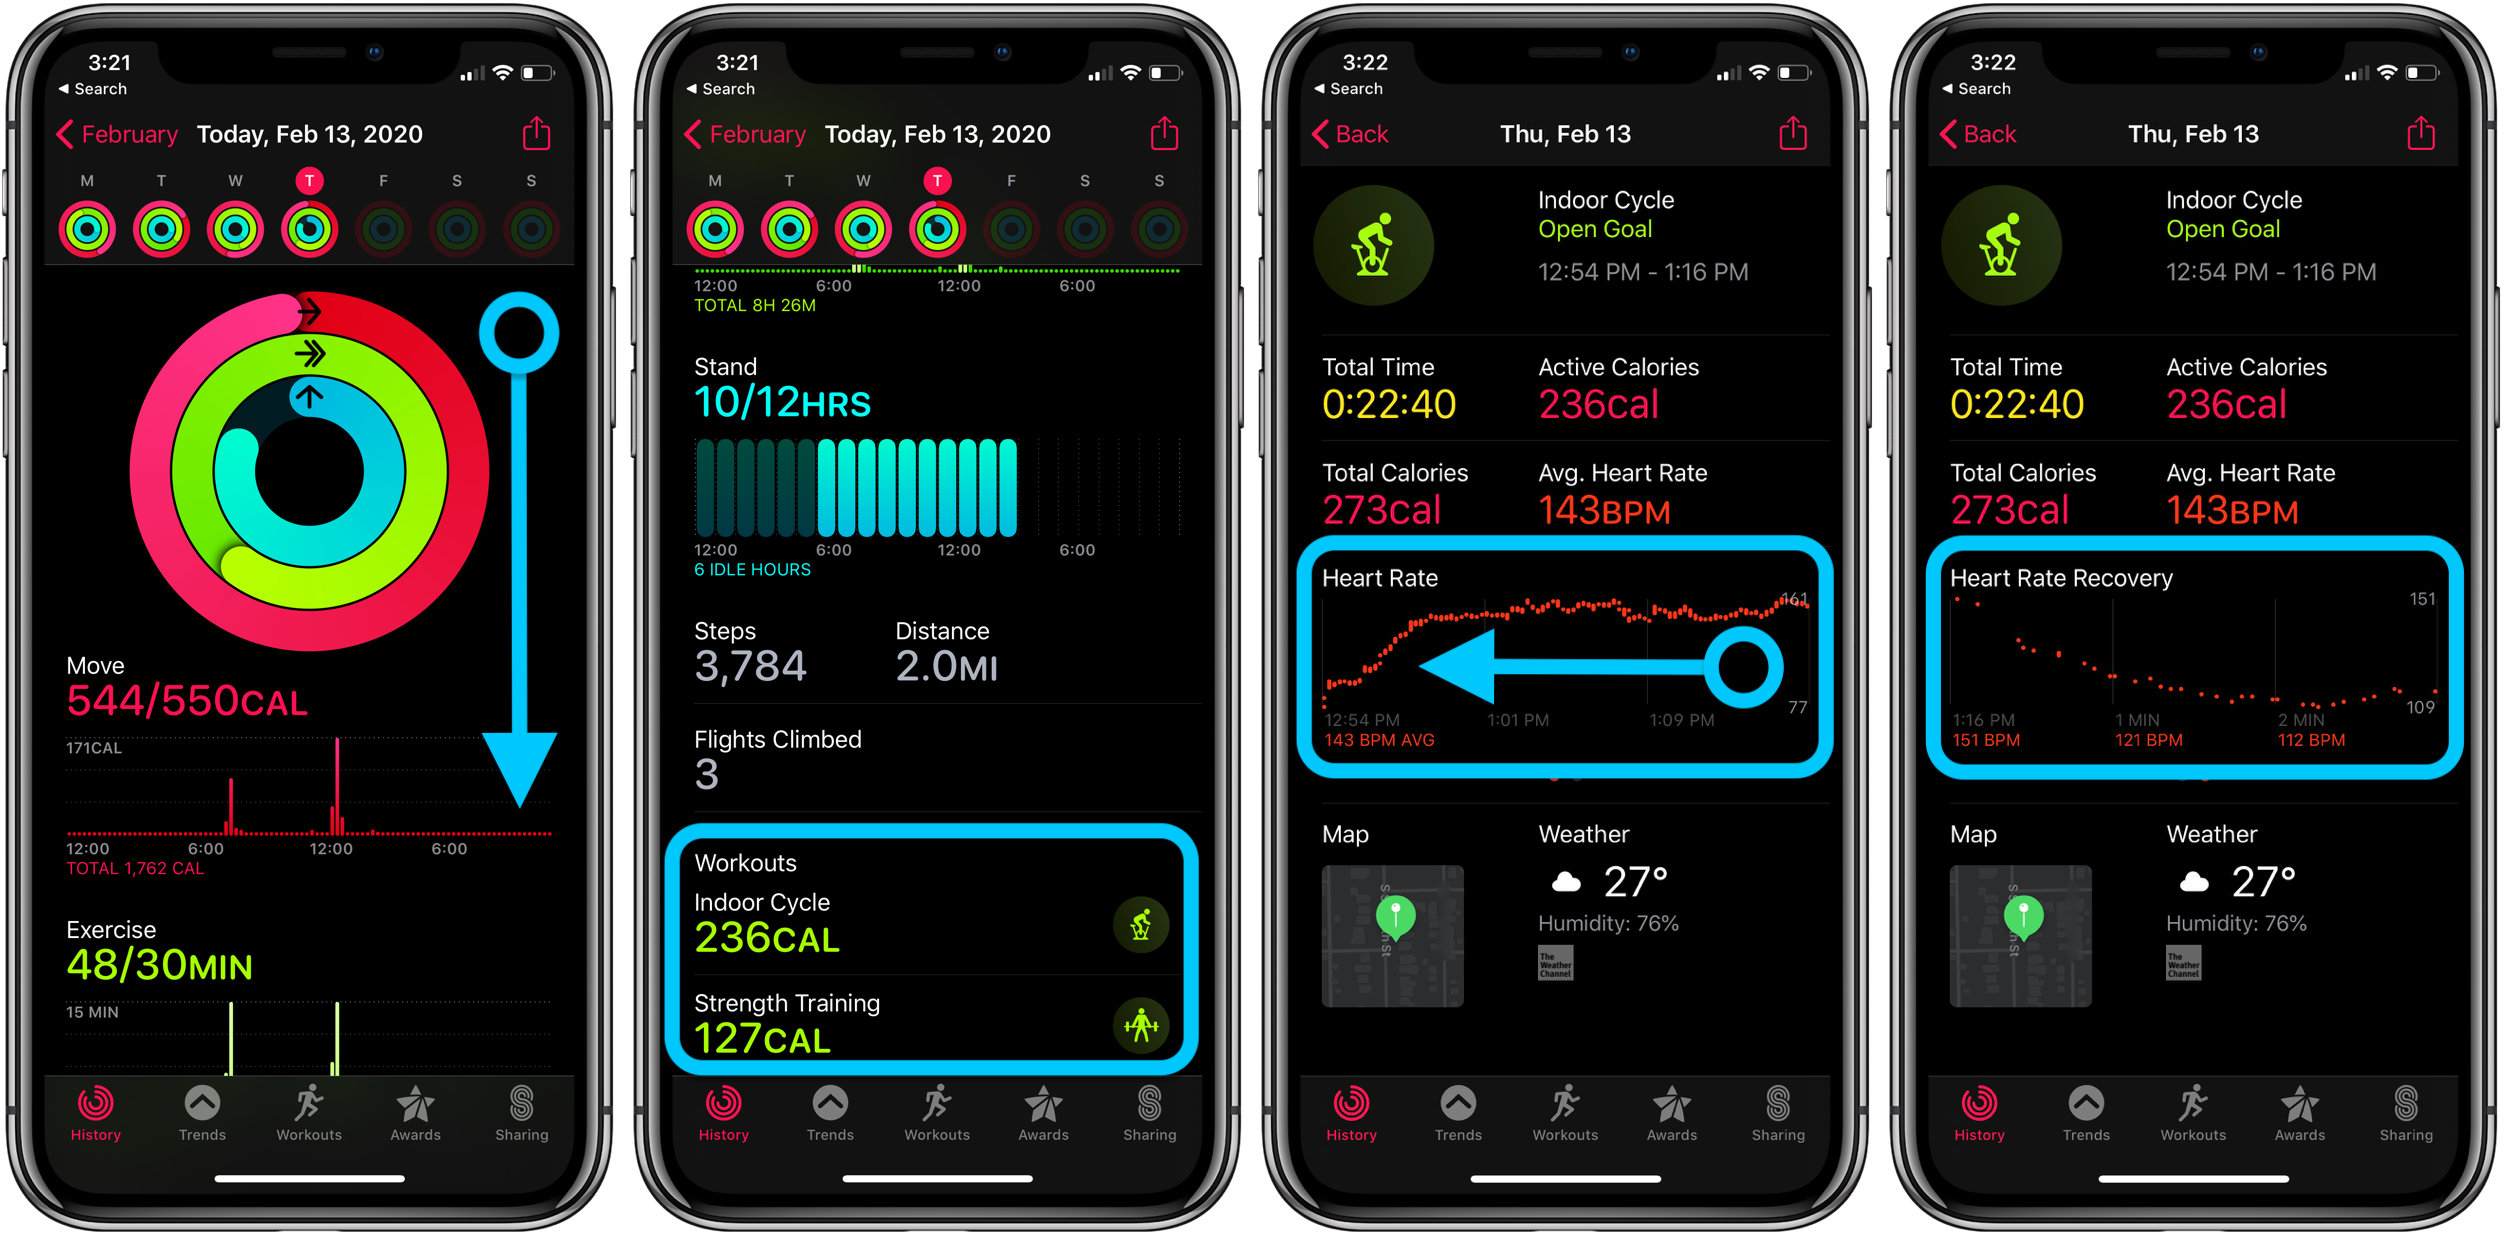 How to see Apple Watch heart rate recovery and what is it walkthrough 2